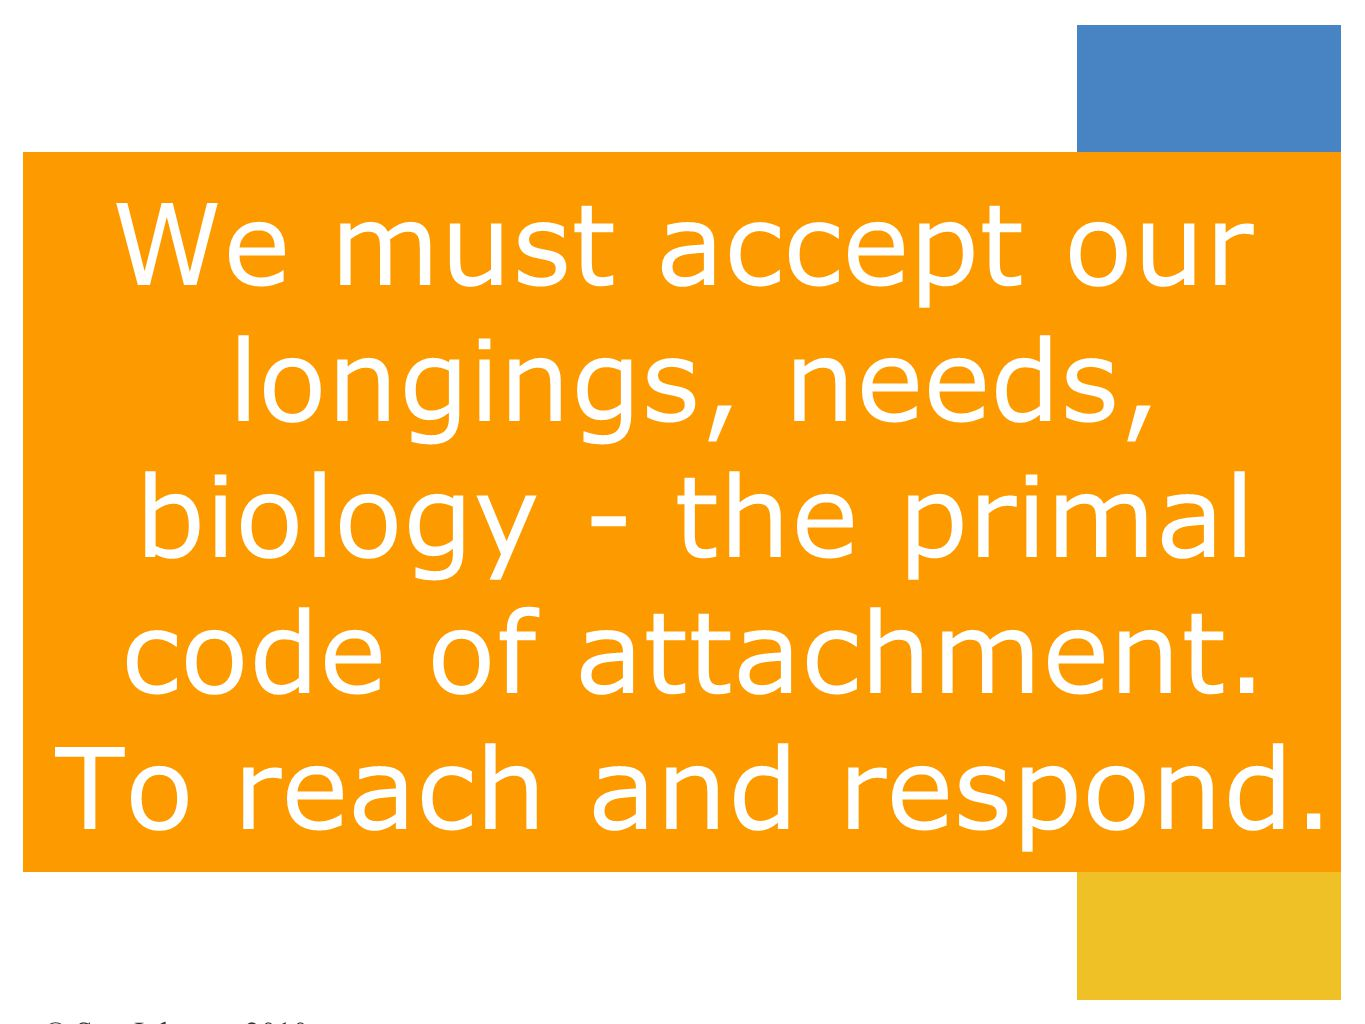 We must accept our longings, needs, biology - the primal code of attachment. To reach and respond. © Sue Johnson 2010